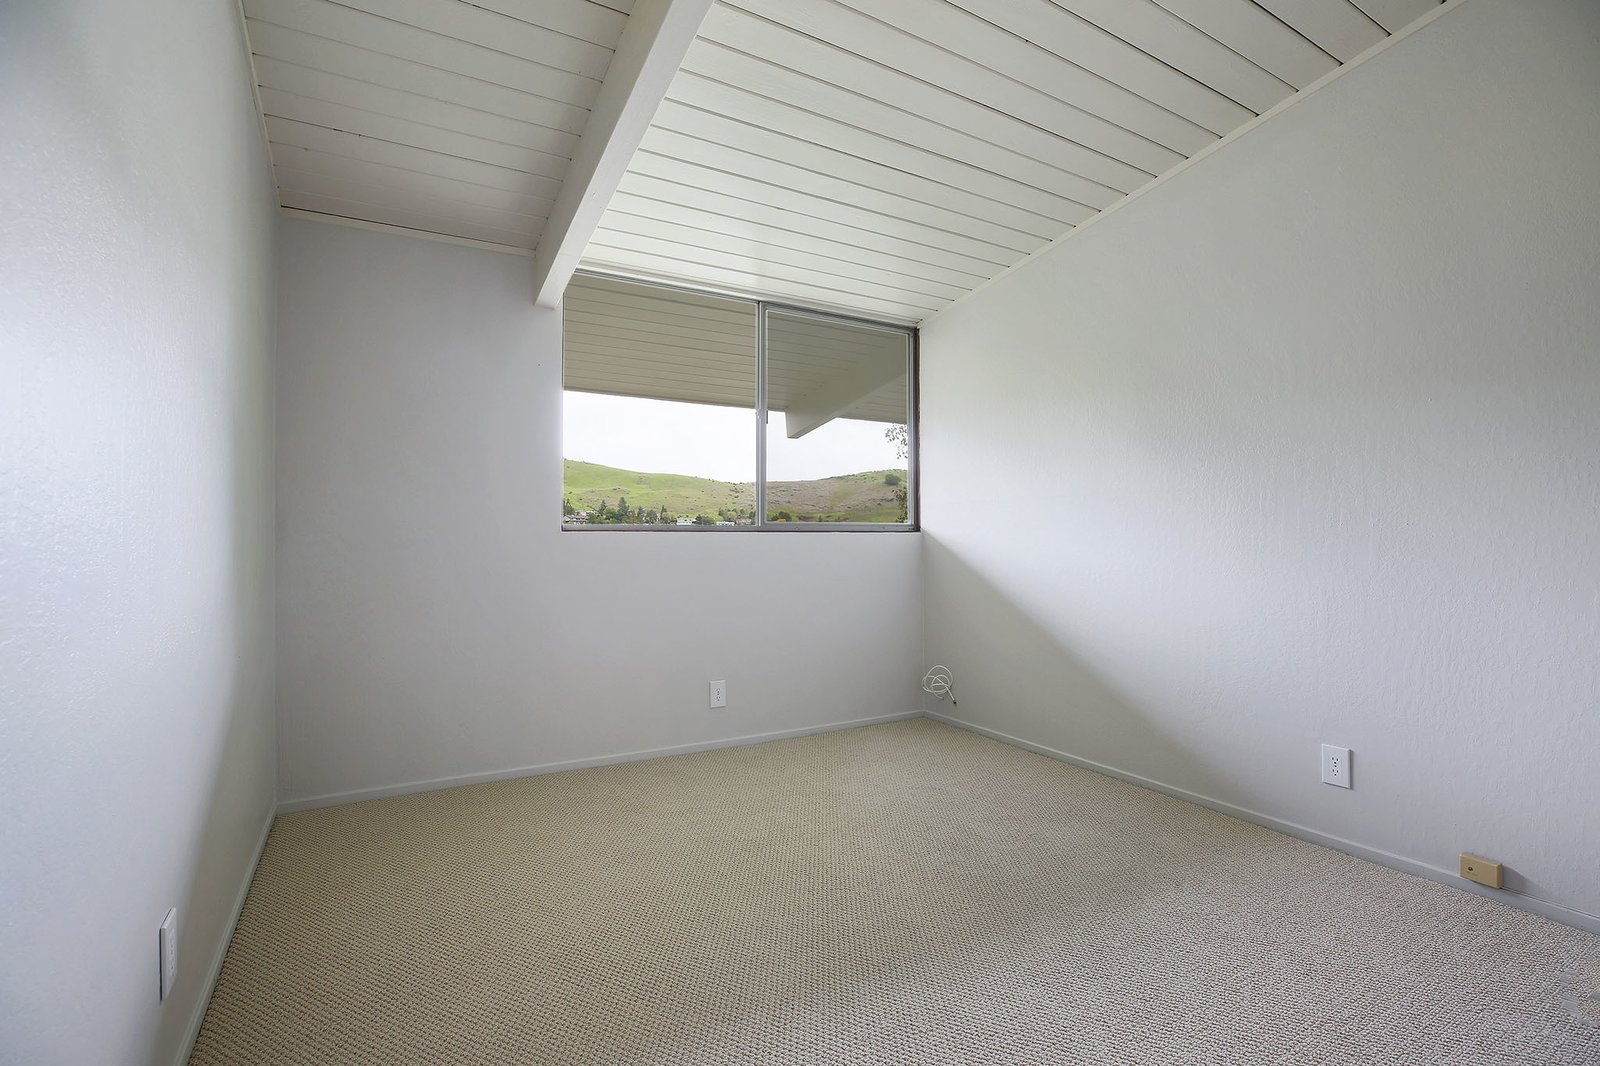 Bedroom and Carpet Floor One of the other bedrooms.  Photo 13 of 15 in This Rare Two-Story Eichler Has Just Been Listed For $1.35M